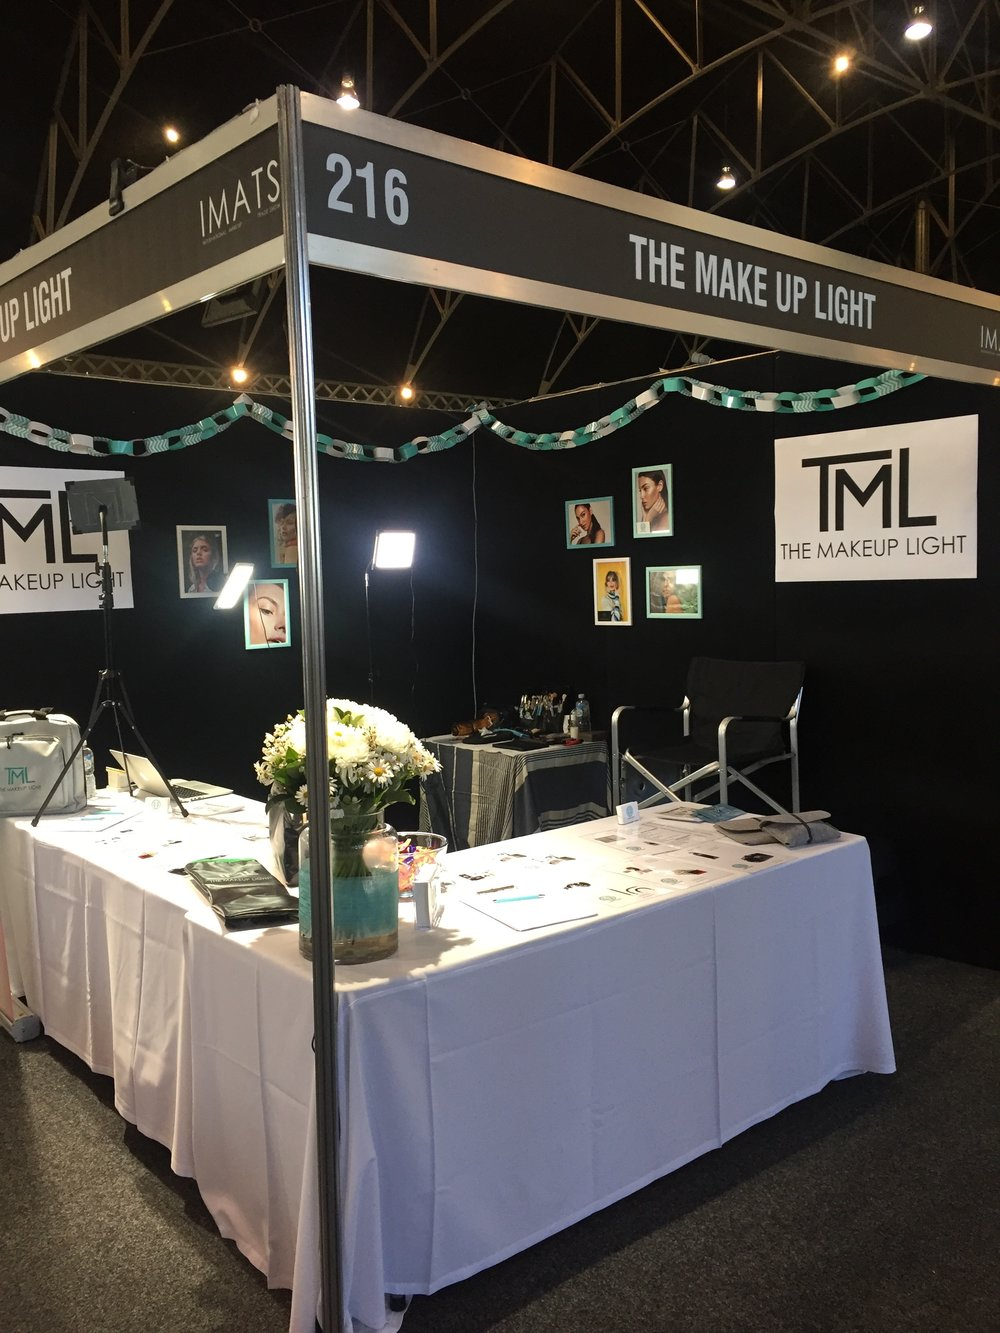 Booth 216